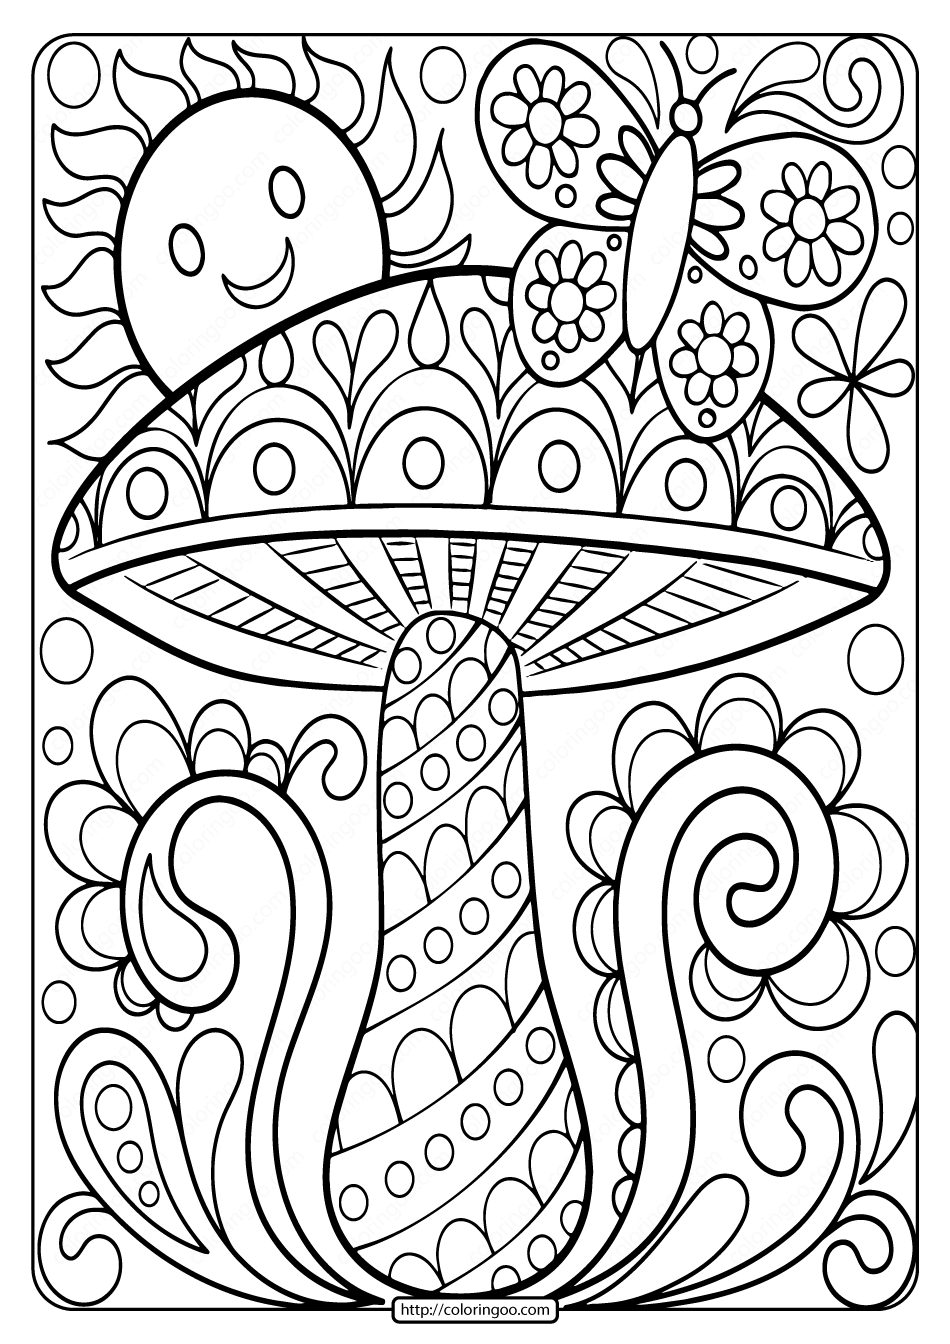 colouring pages to print free doll coloring pages to download and print for free to pages colouring free print